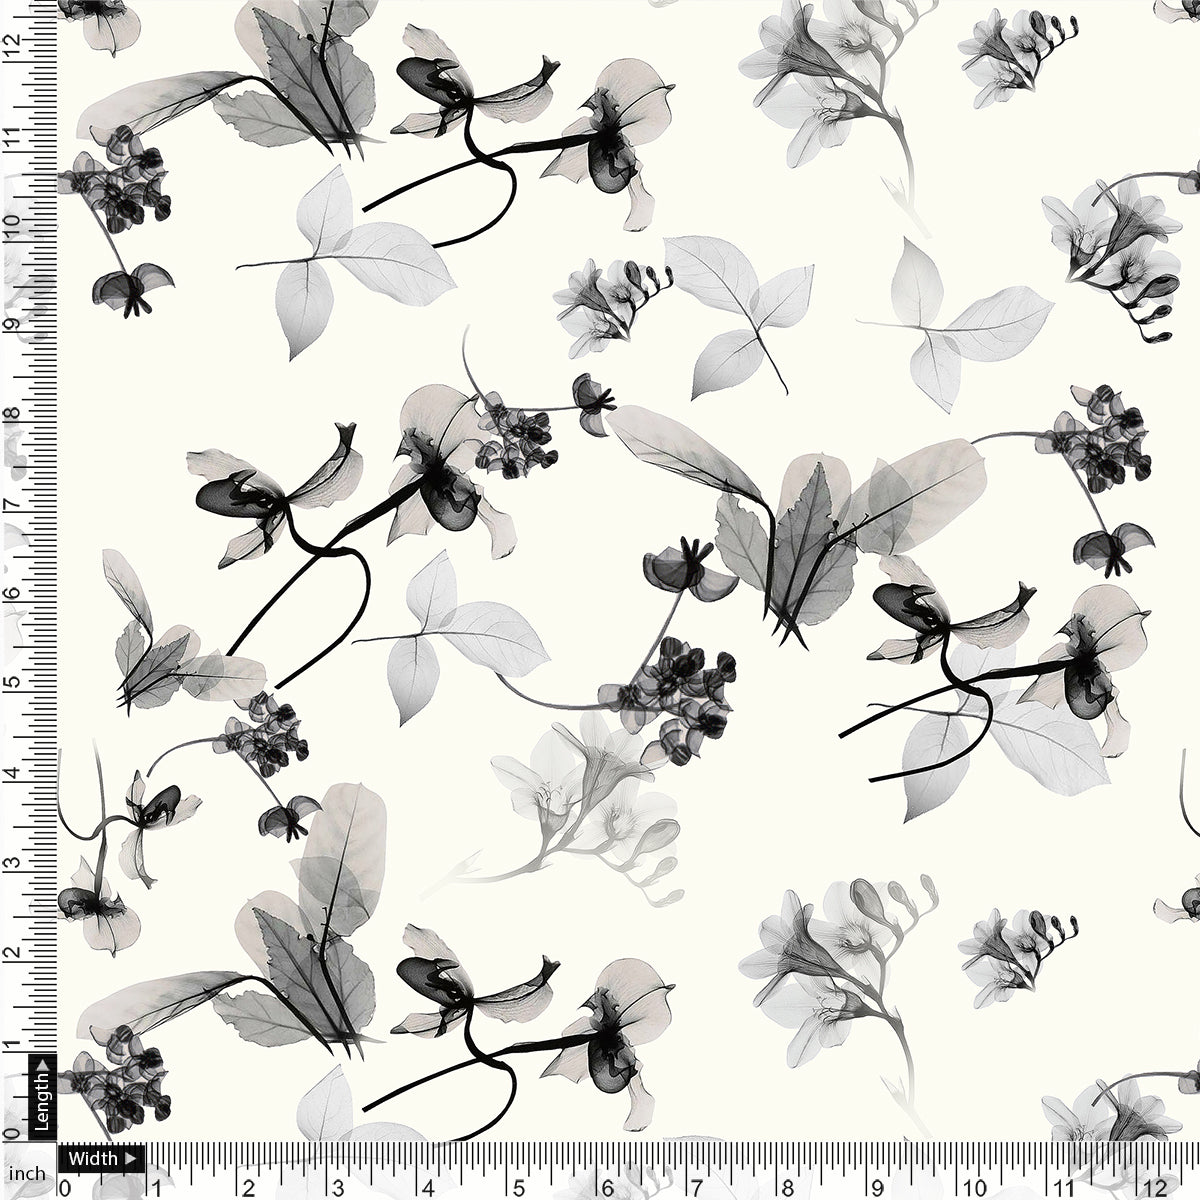 Black Floating Flowers Digital Printed Fabric - Tusser Silk